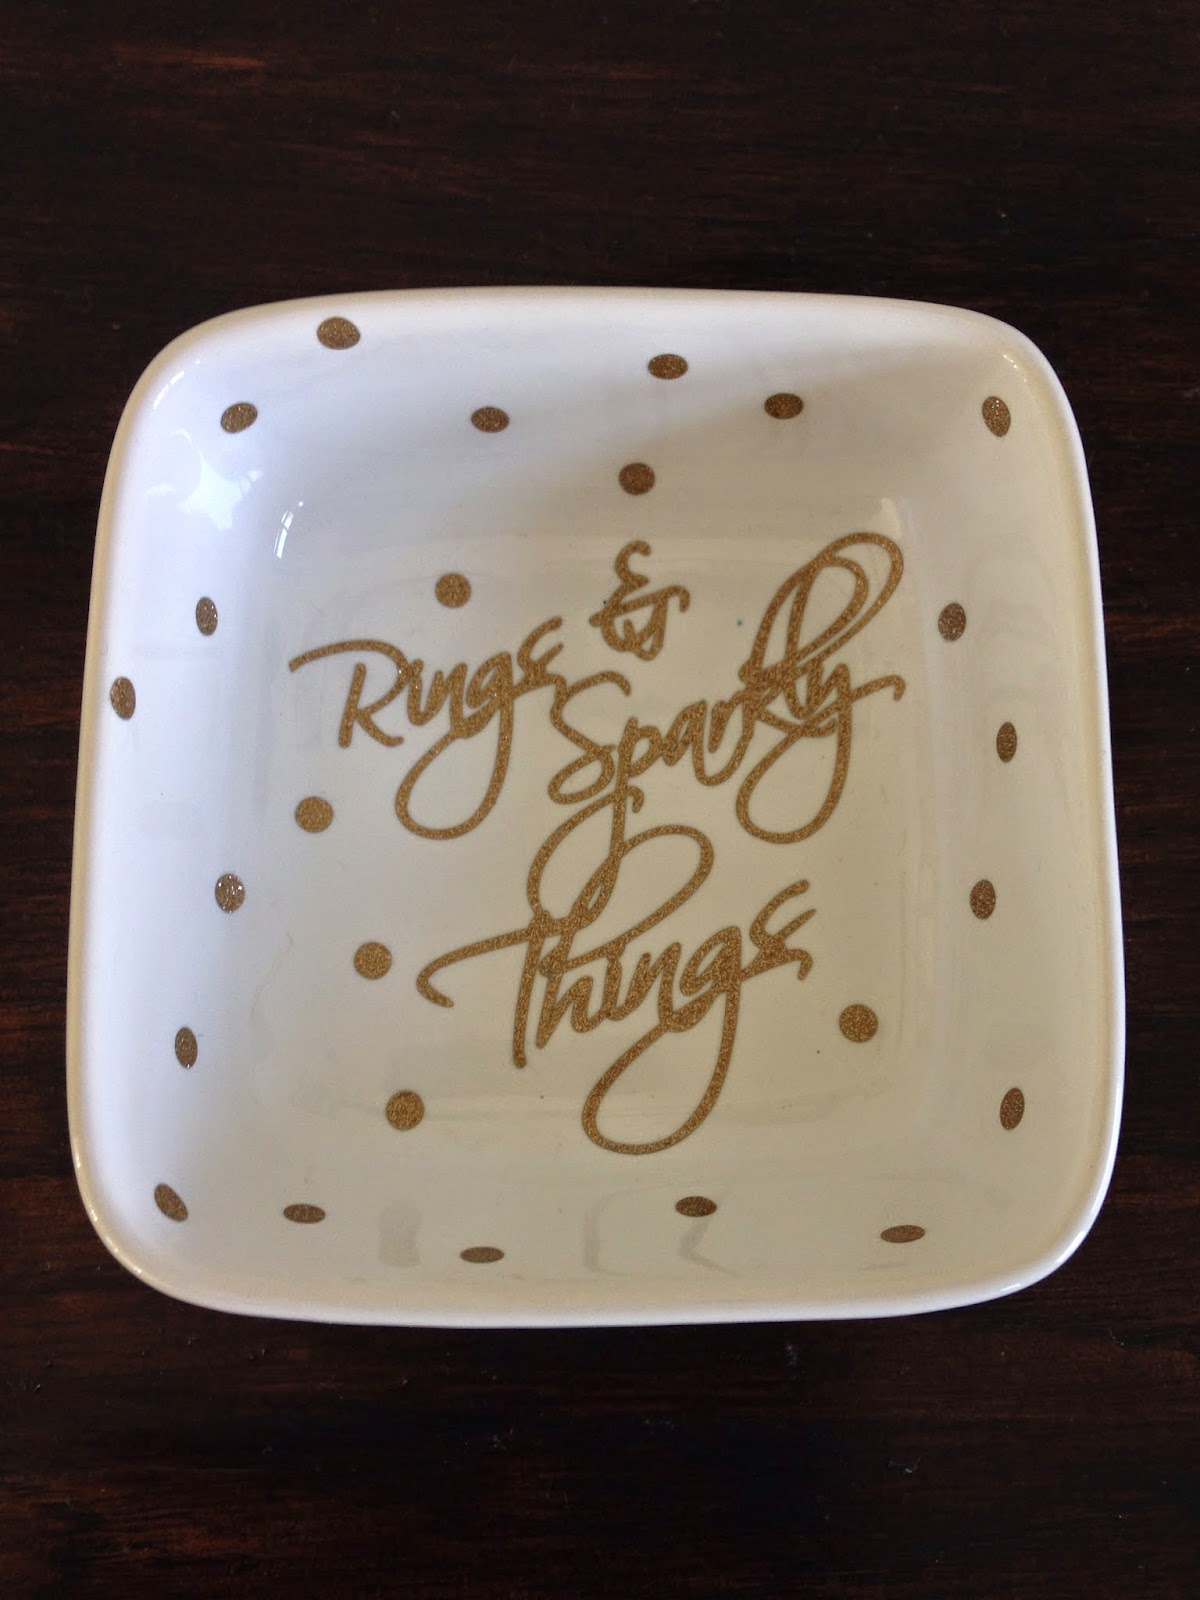 DIY, do it yourself, ring dish, Silhouette tutorial, text, polka dots